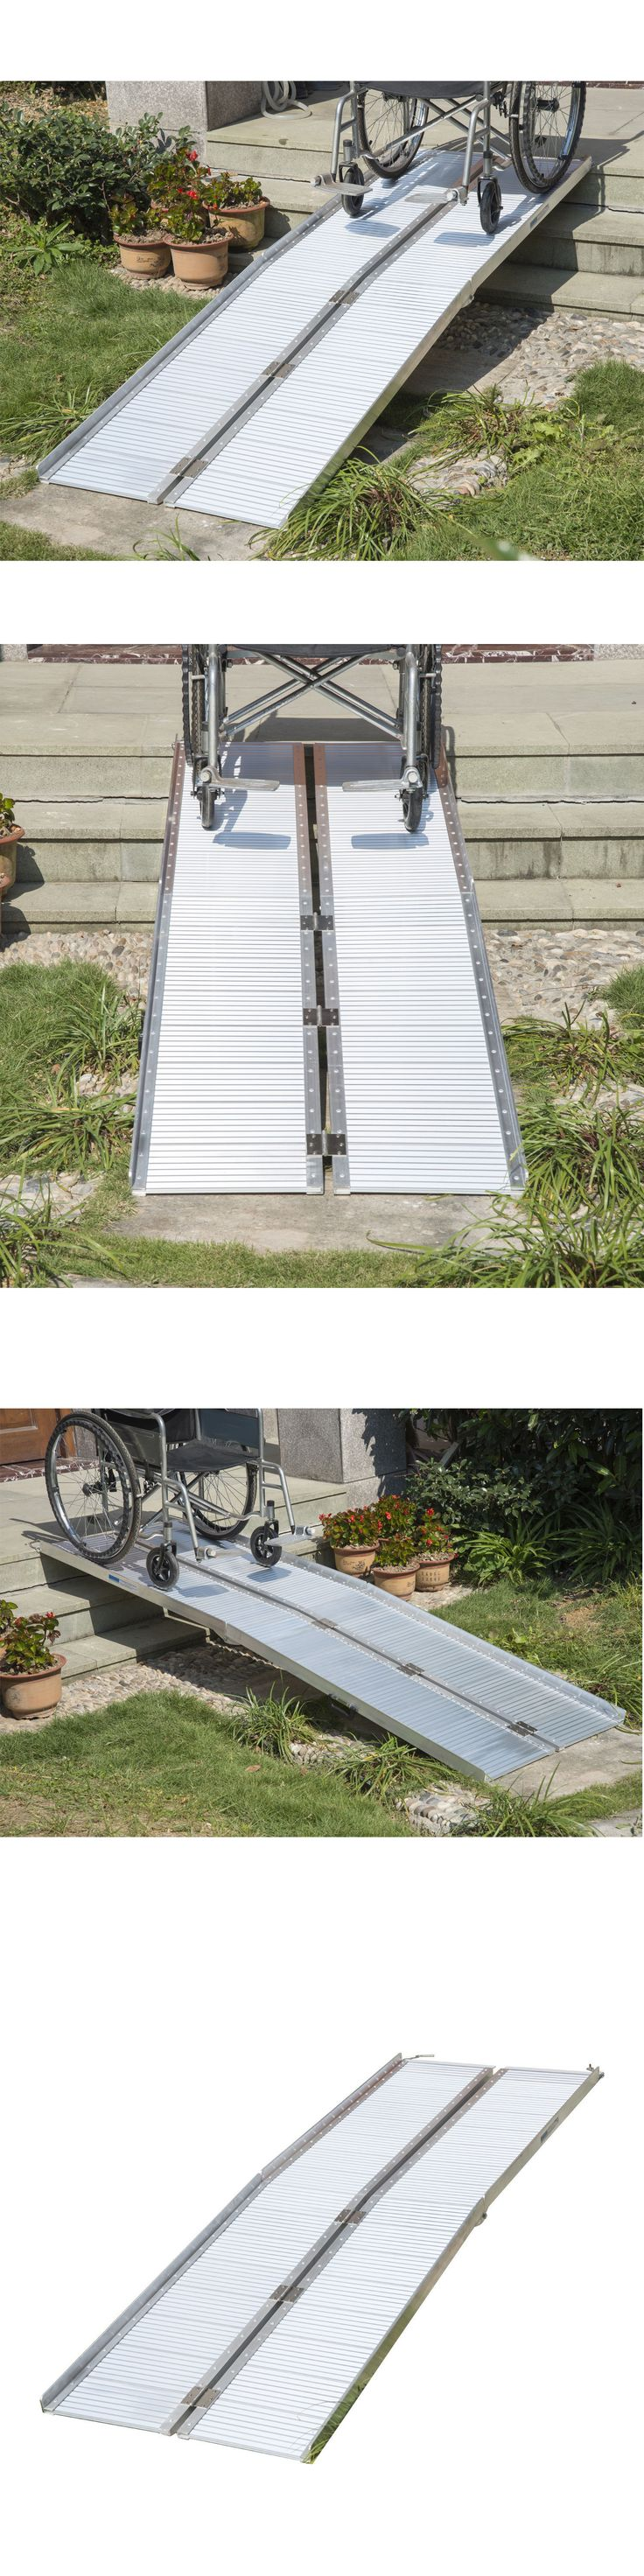 Access Ramps: Homcom 8 Aluminum Wheelchair Ramp Fold Handicap Scooter Ramp Portable Mobility BUY IT NOW ONLY: $189.99